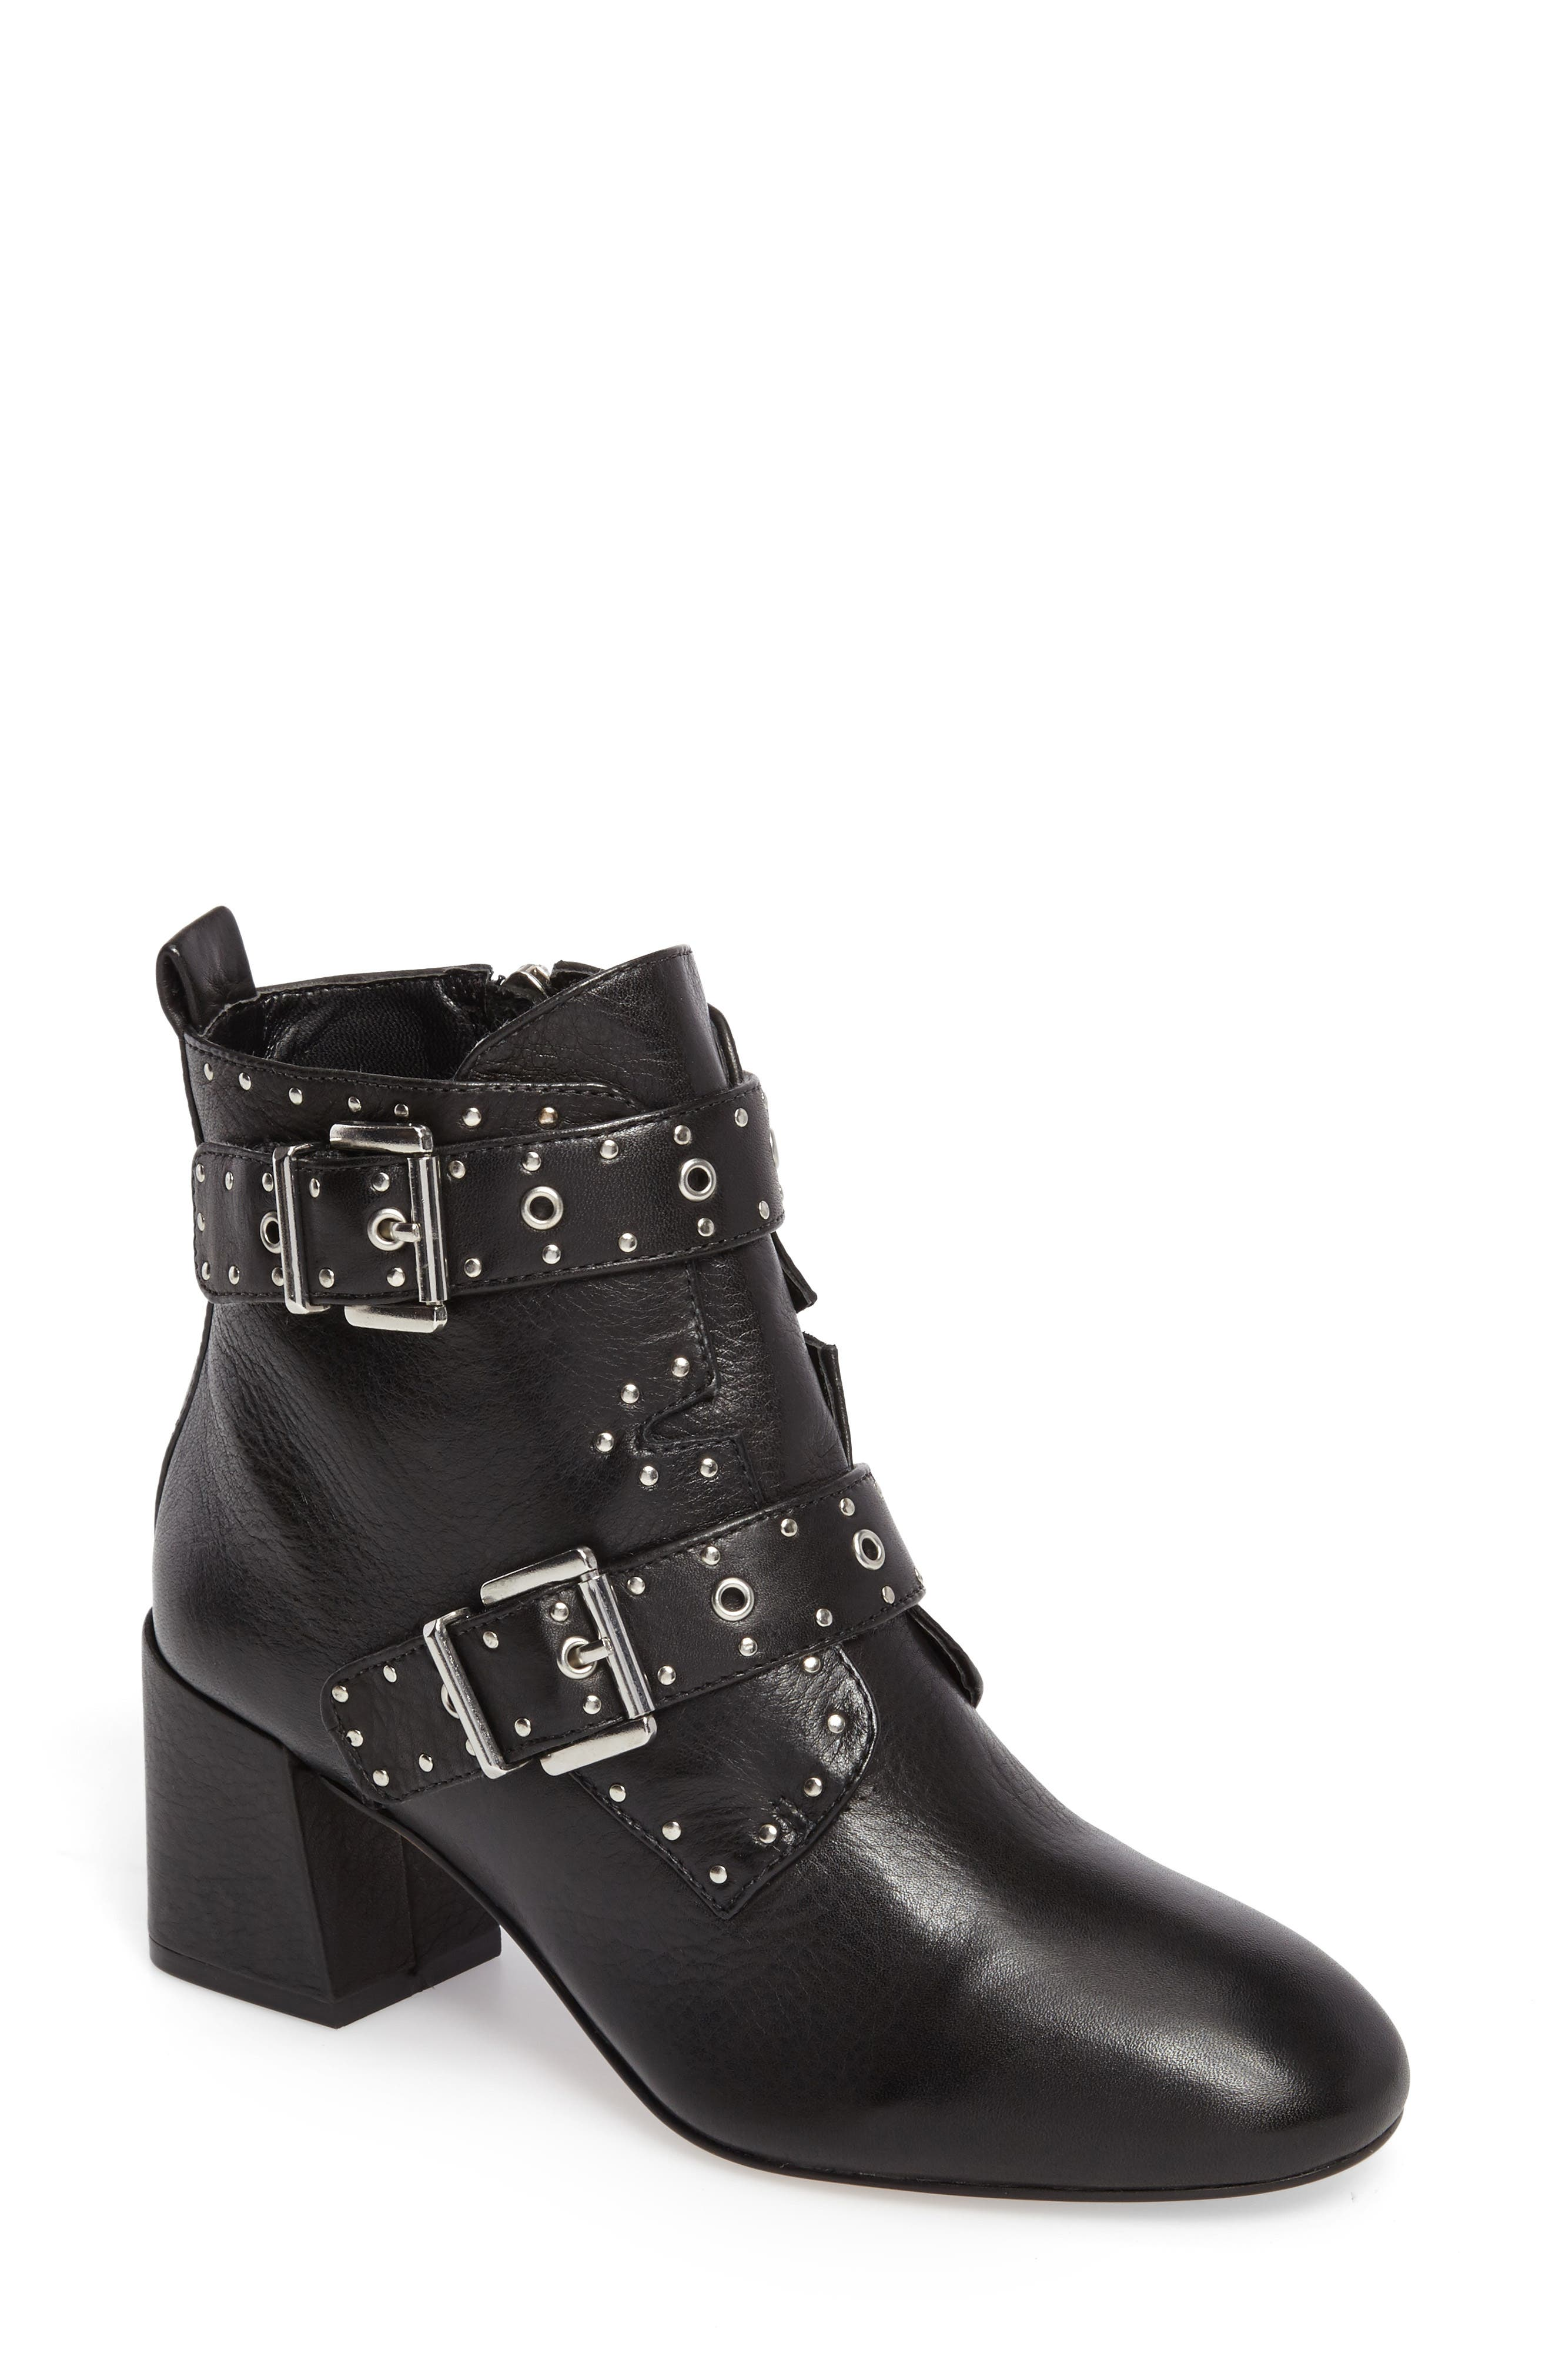 Logan Studded Bootie,                             Main thumbnail 1, color,                             001